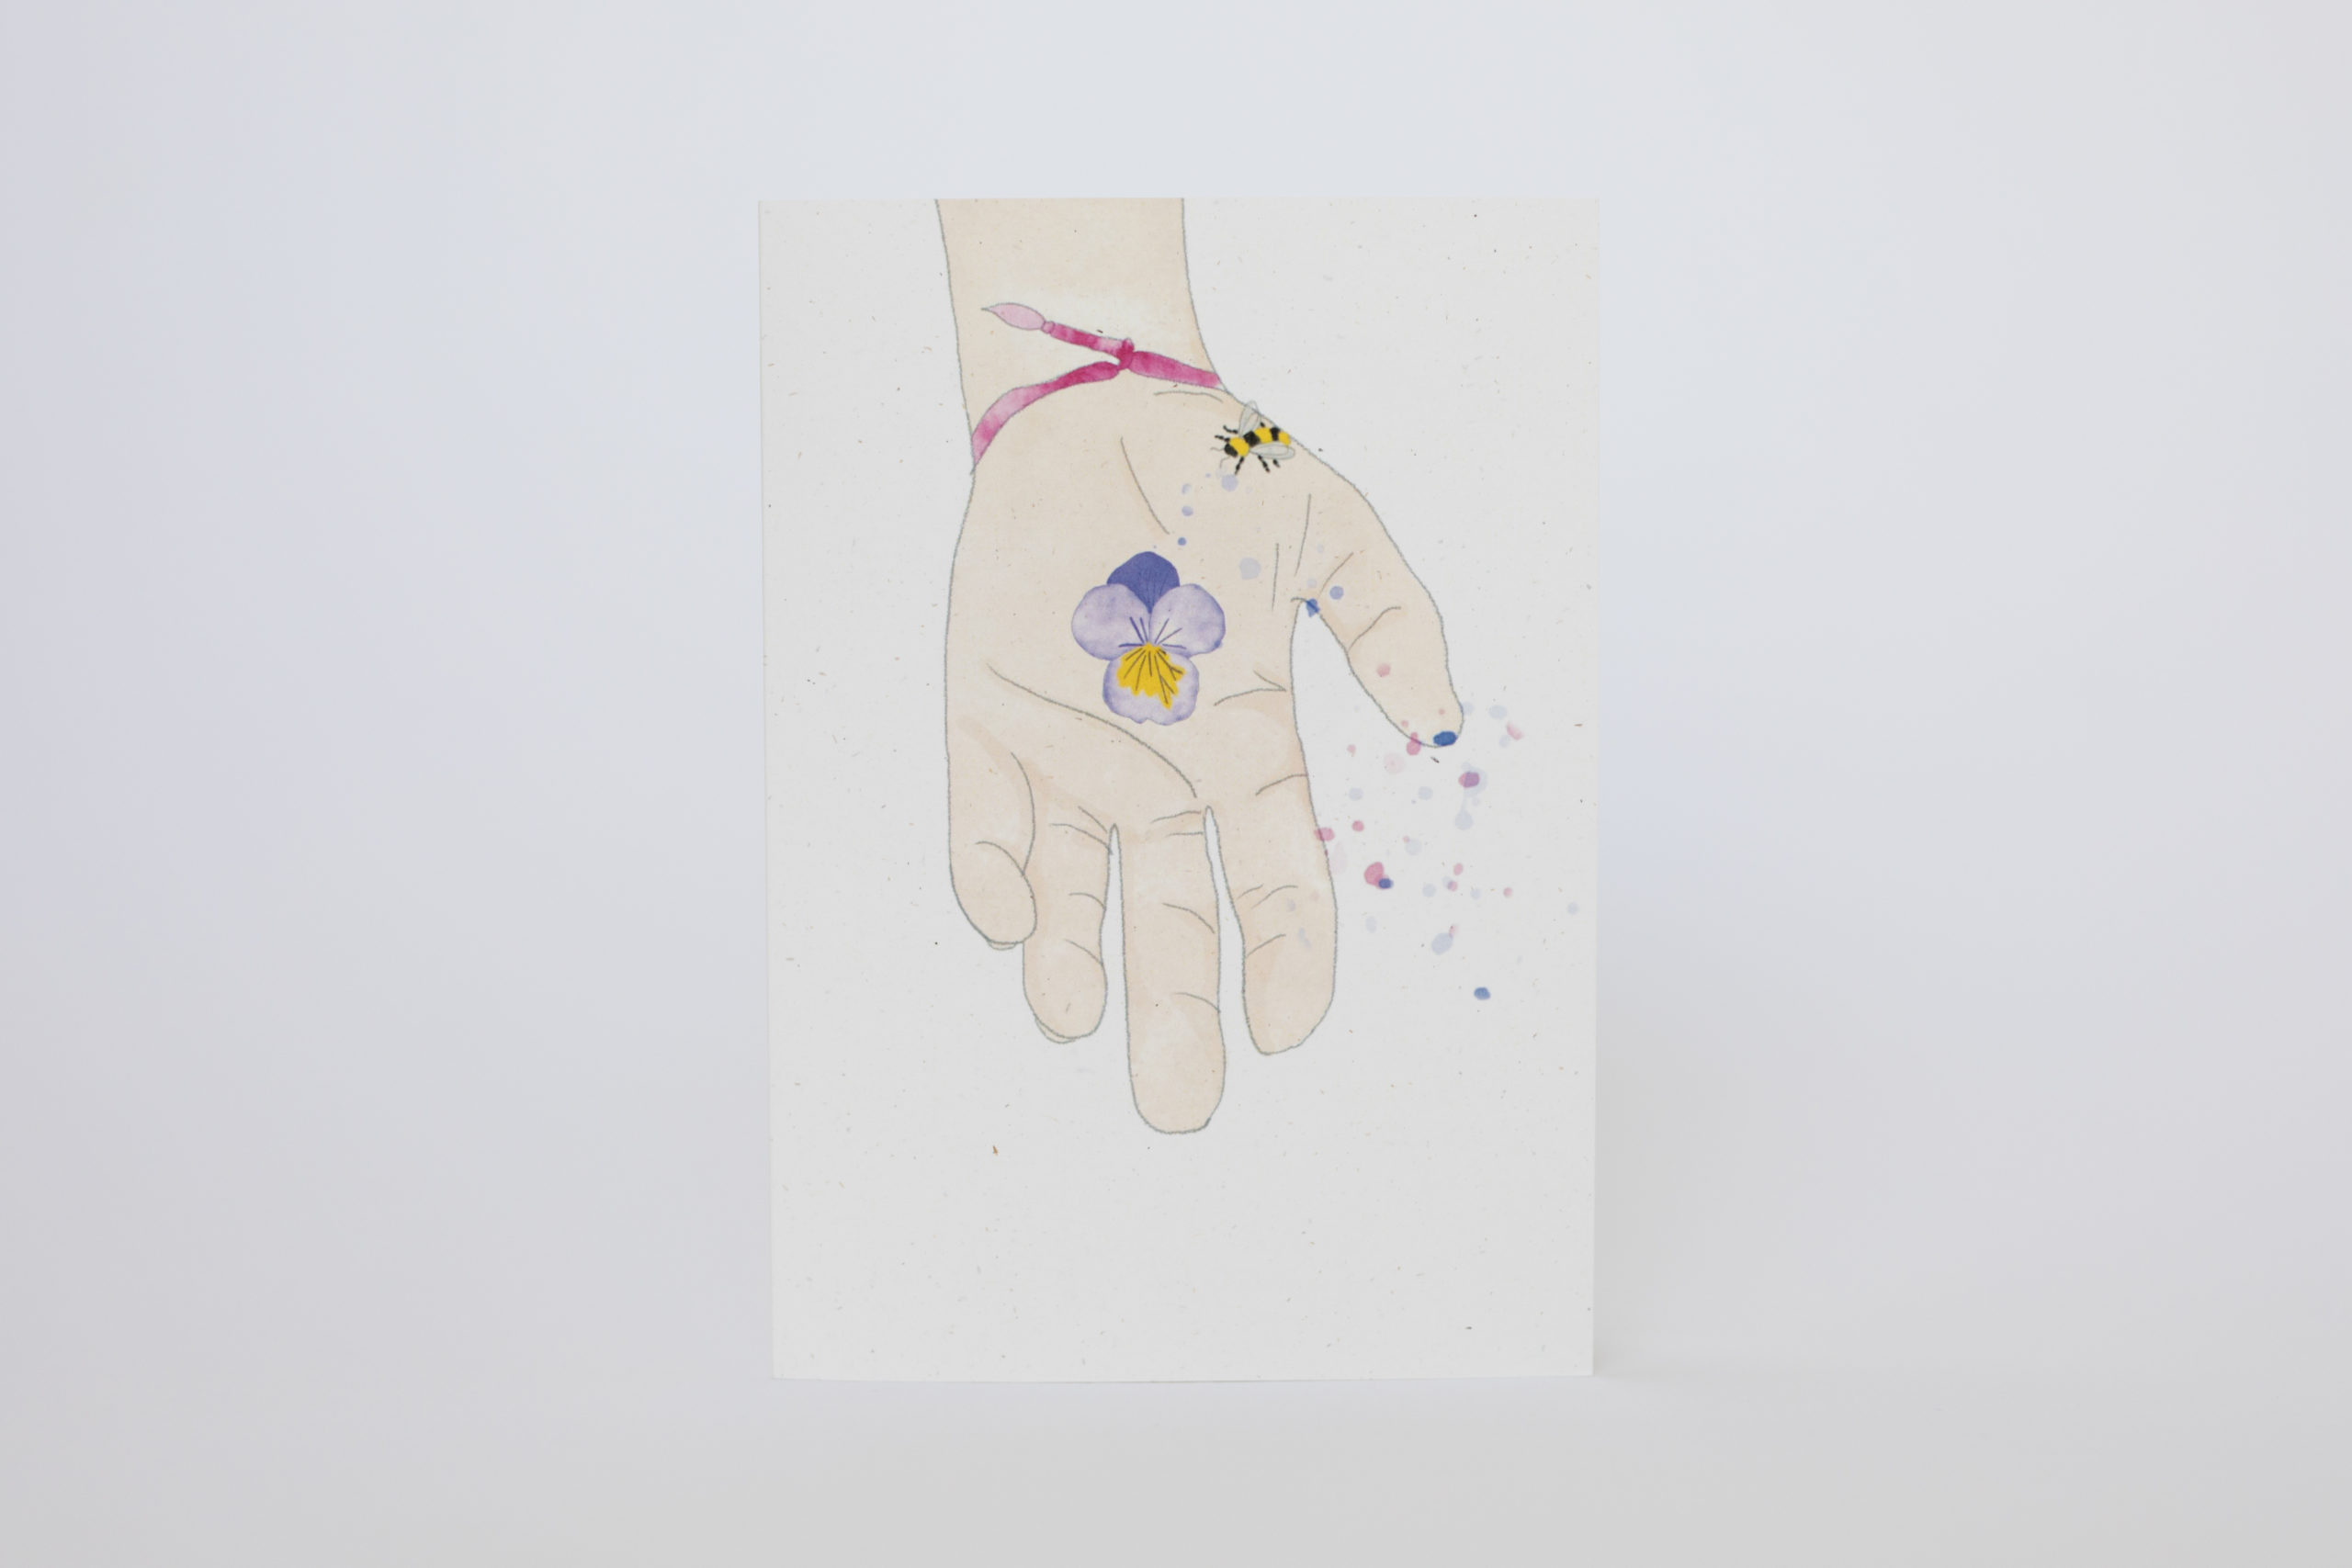 Maia – Giving Seeds of Love seeded heart and greeting card via @chooicenz